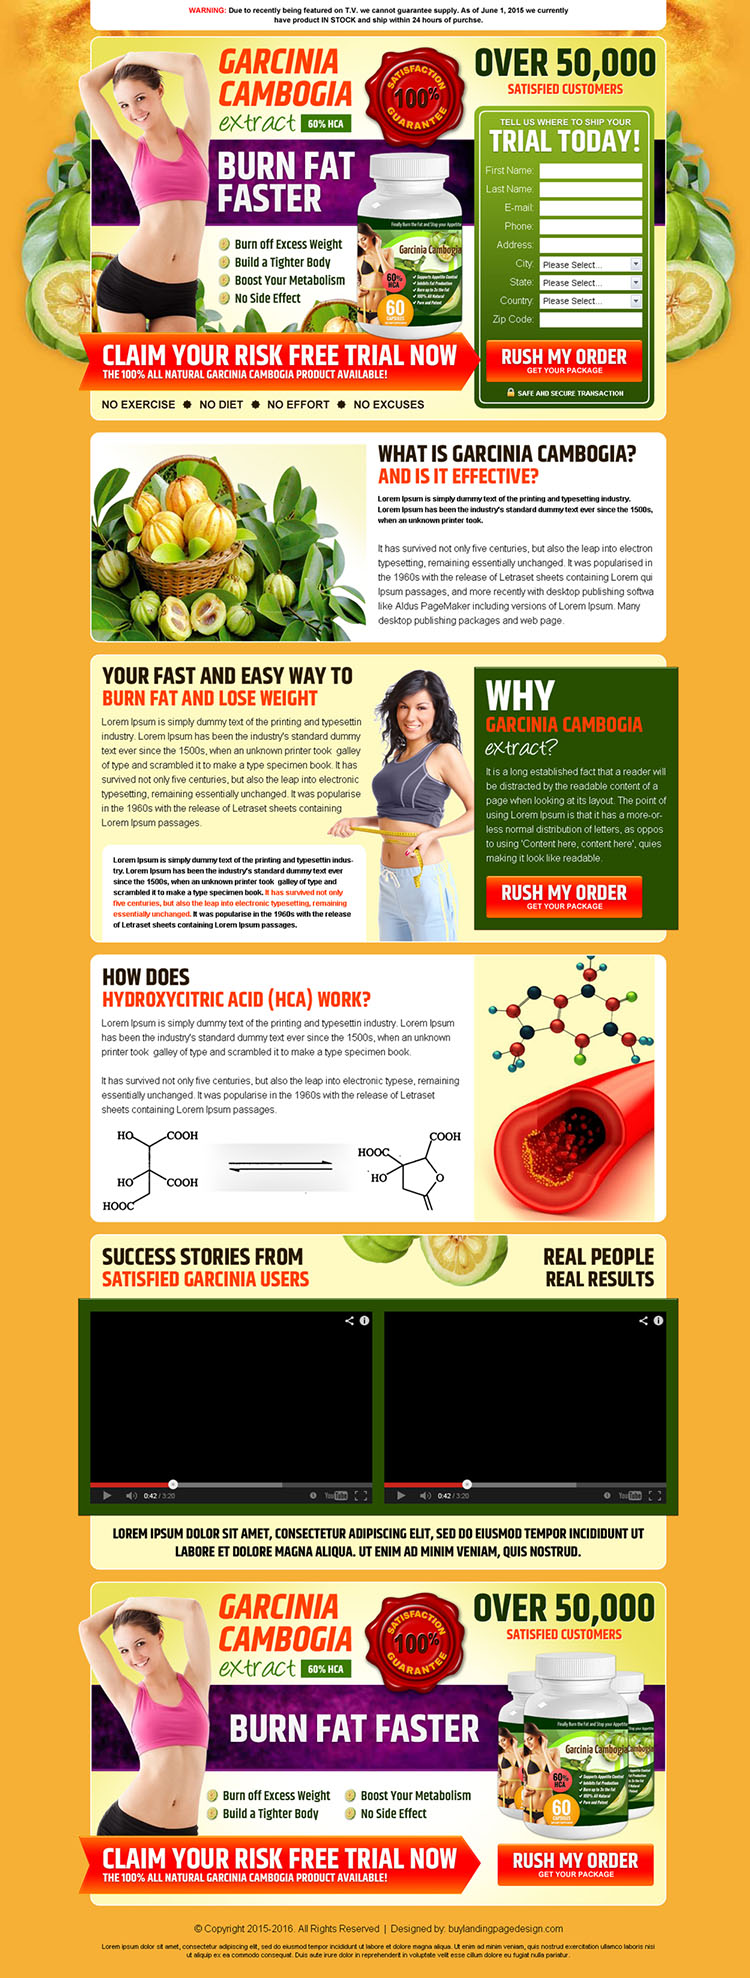 garcinia cambogia risk free trial product selling best converting landing page design